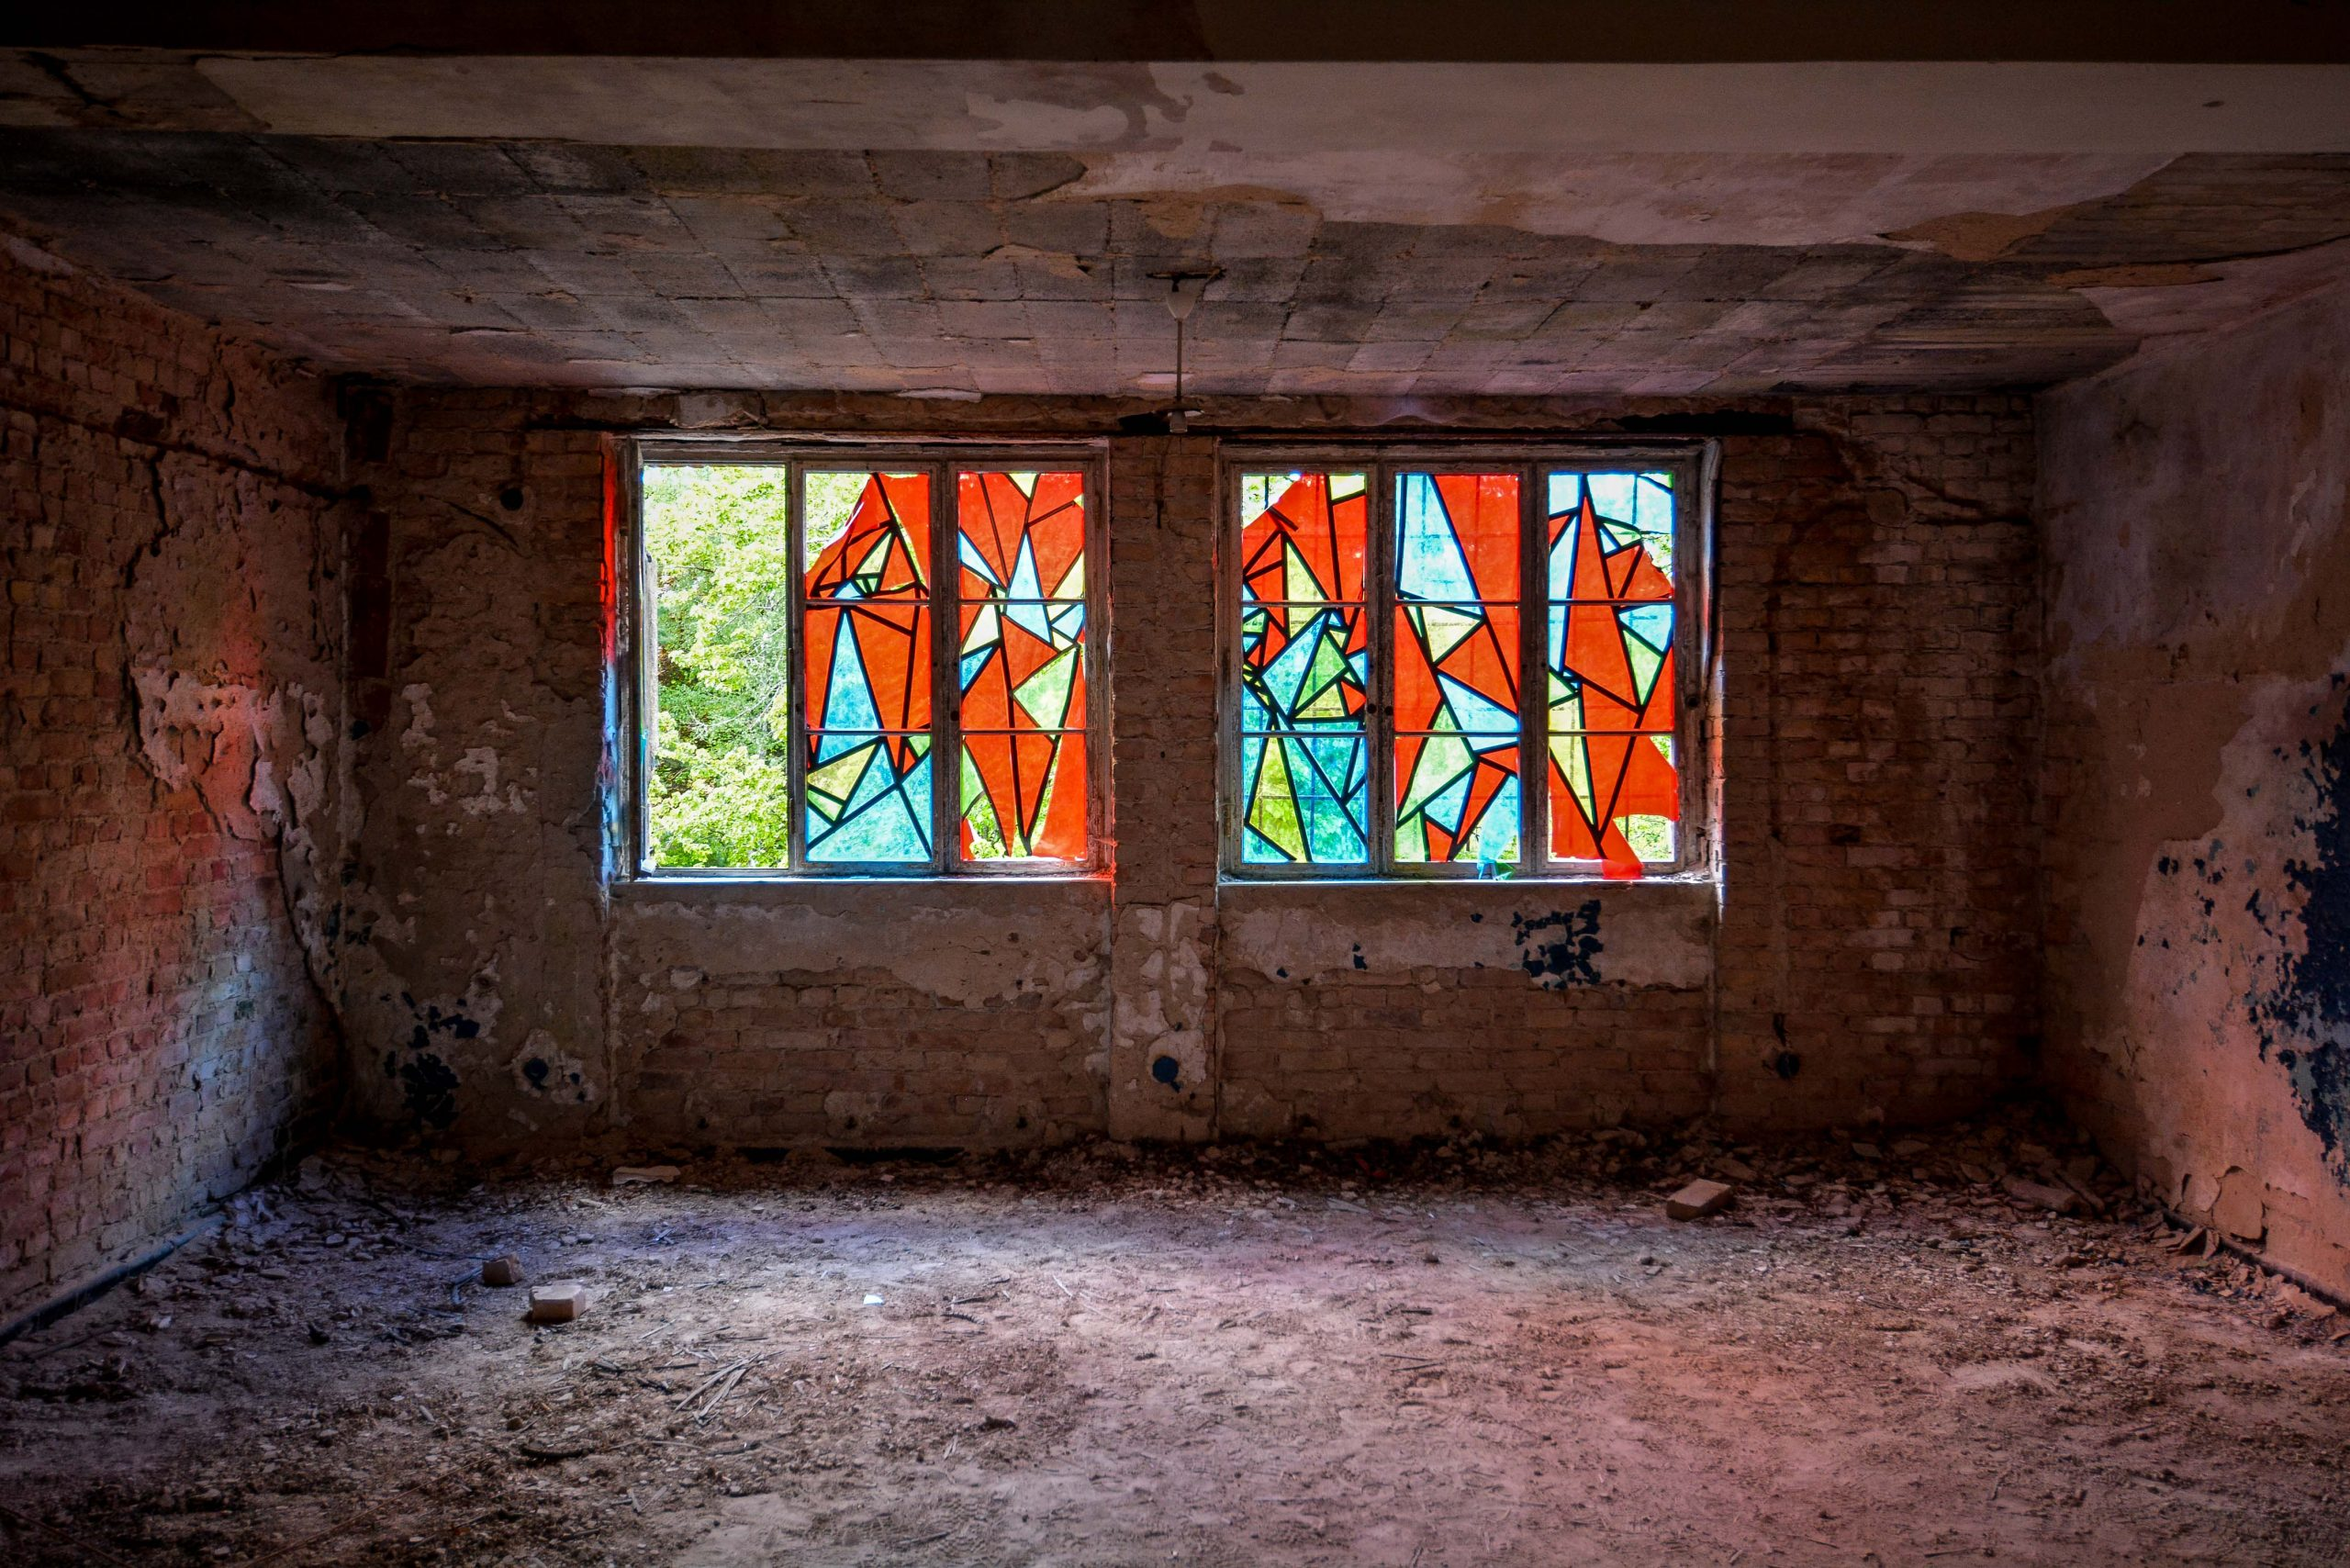 colored windows tuberkulose heilstaette grabowsee sanatorium hospital oranienburg lost places abandoned urbex brandenburg germany deutschland